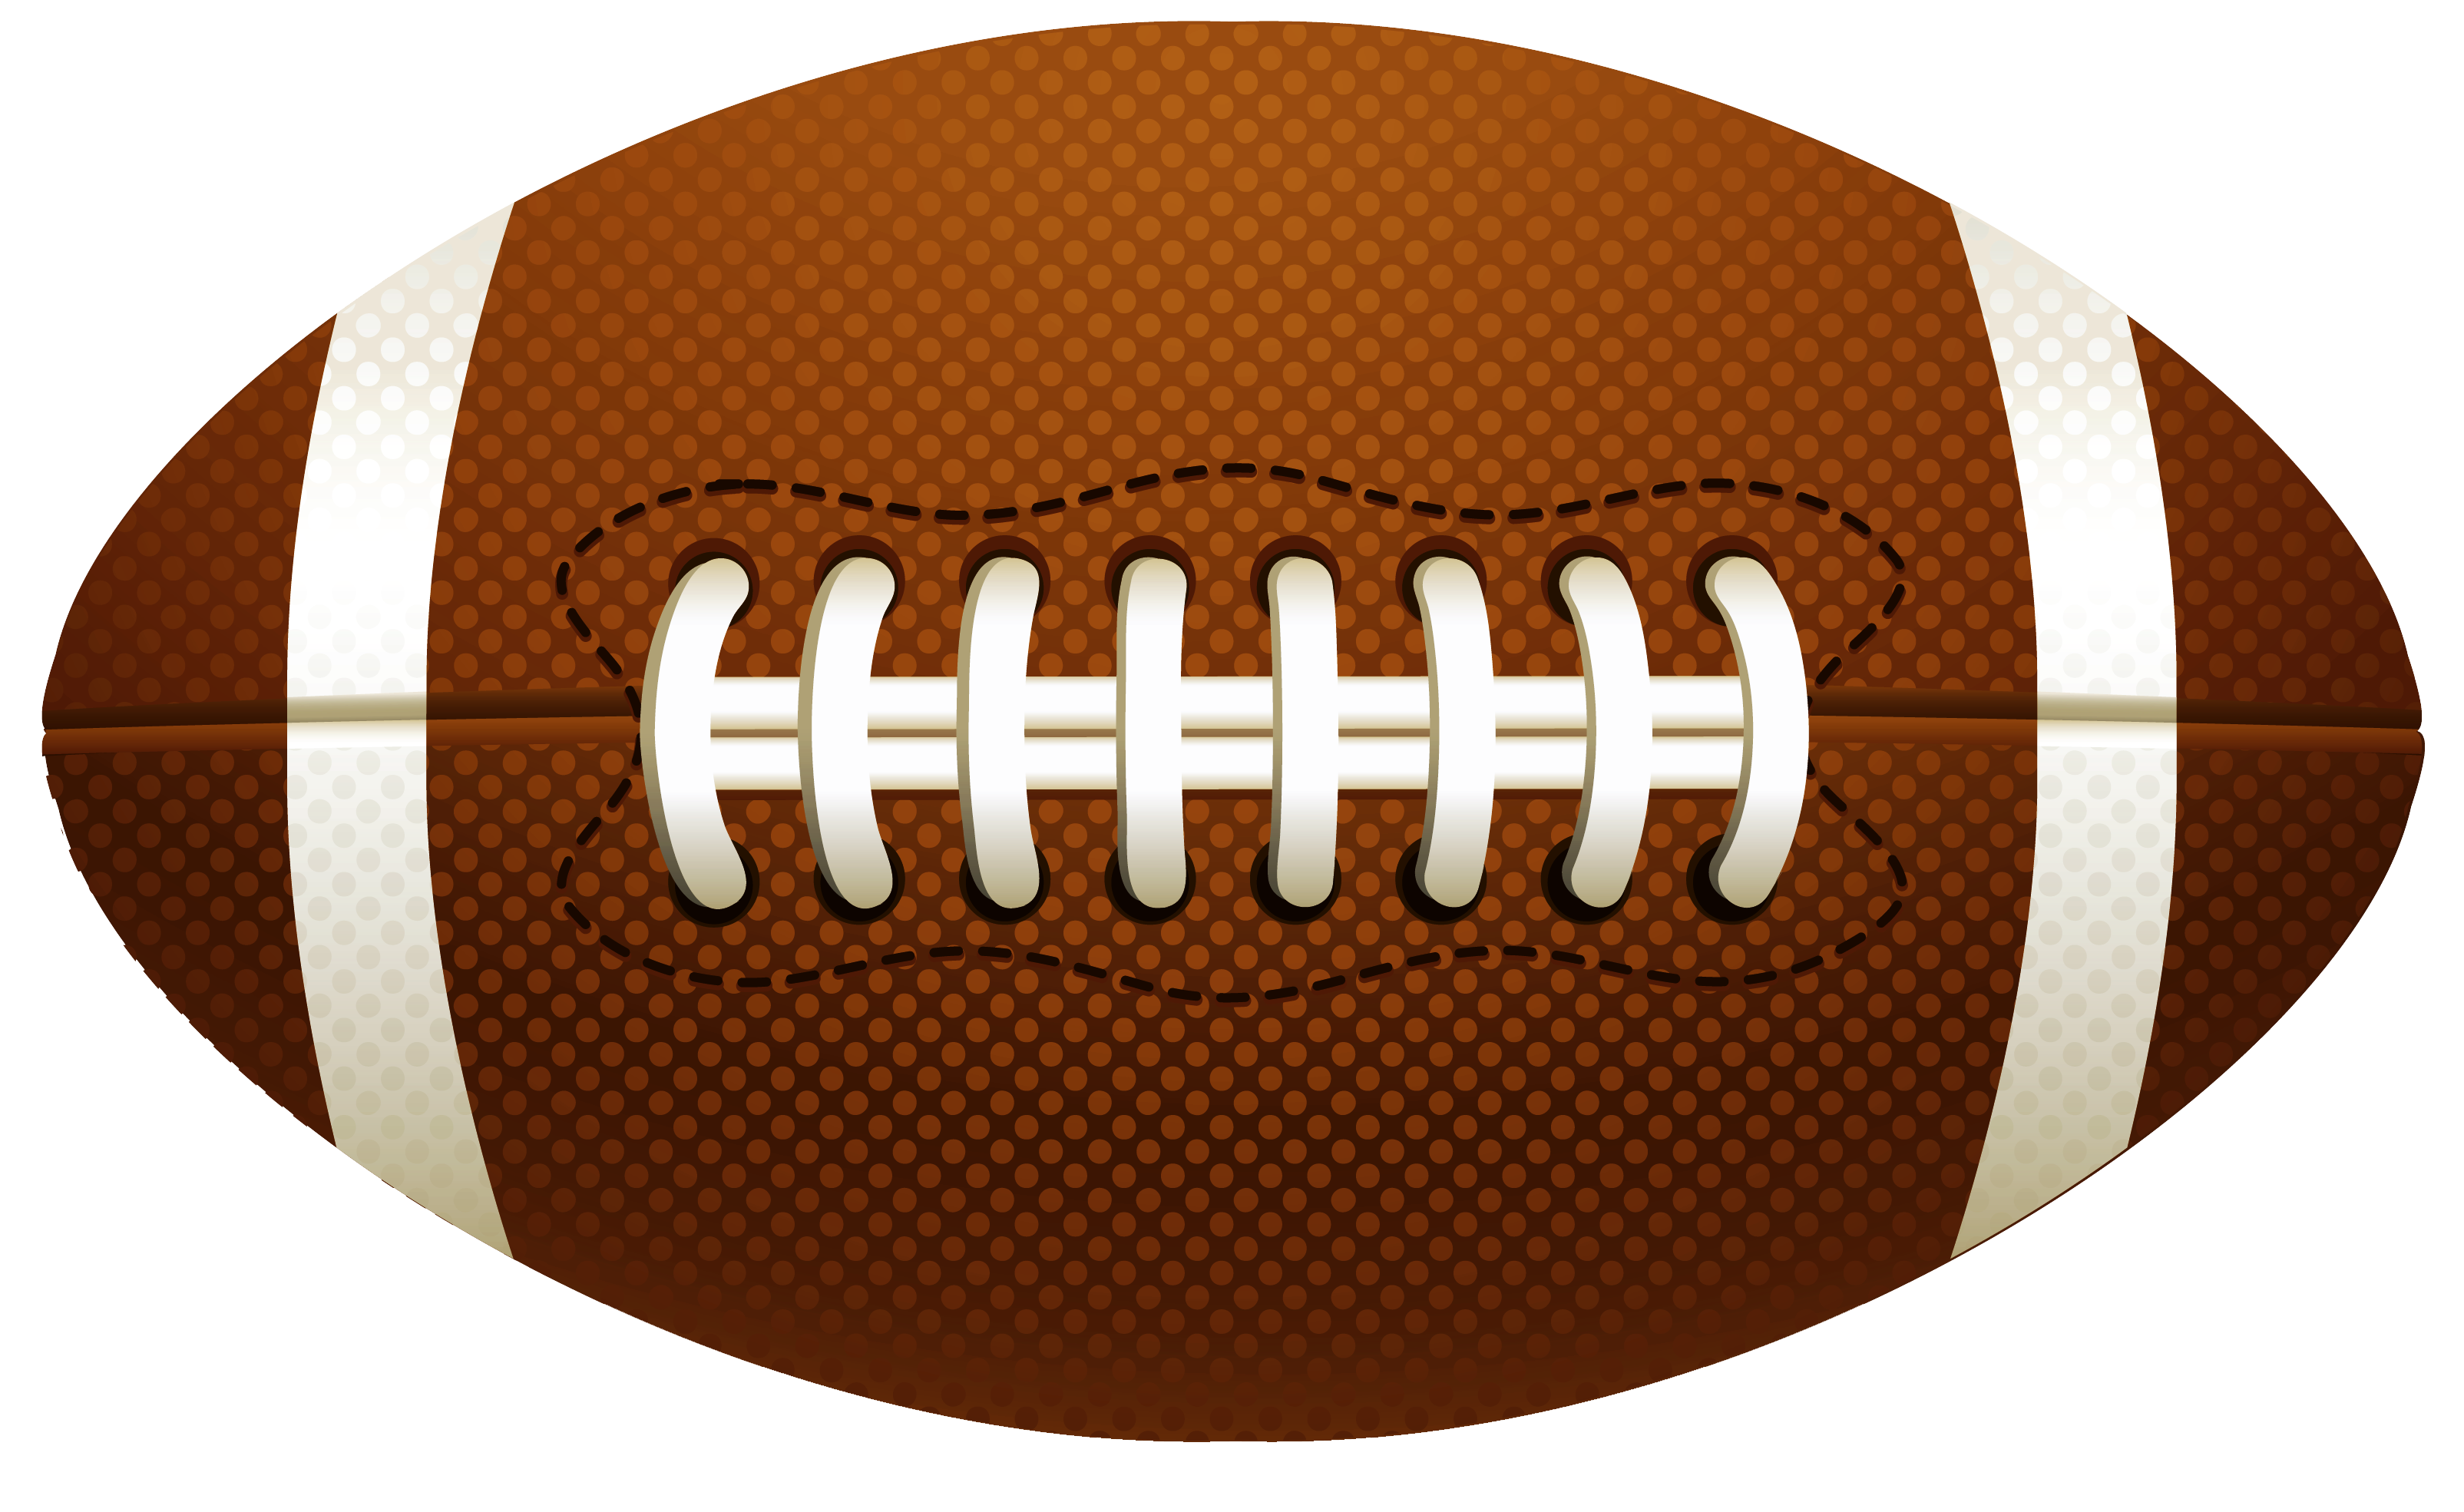 Football clipart set. American ball png vector